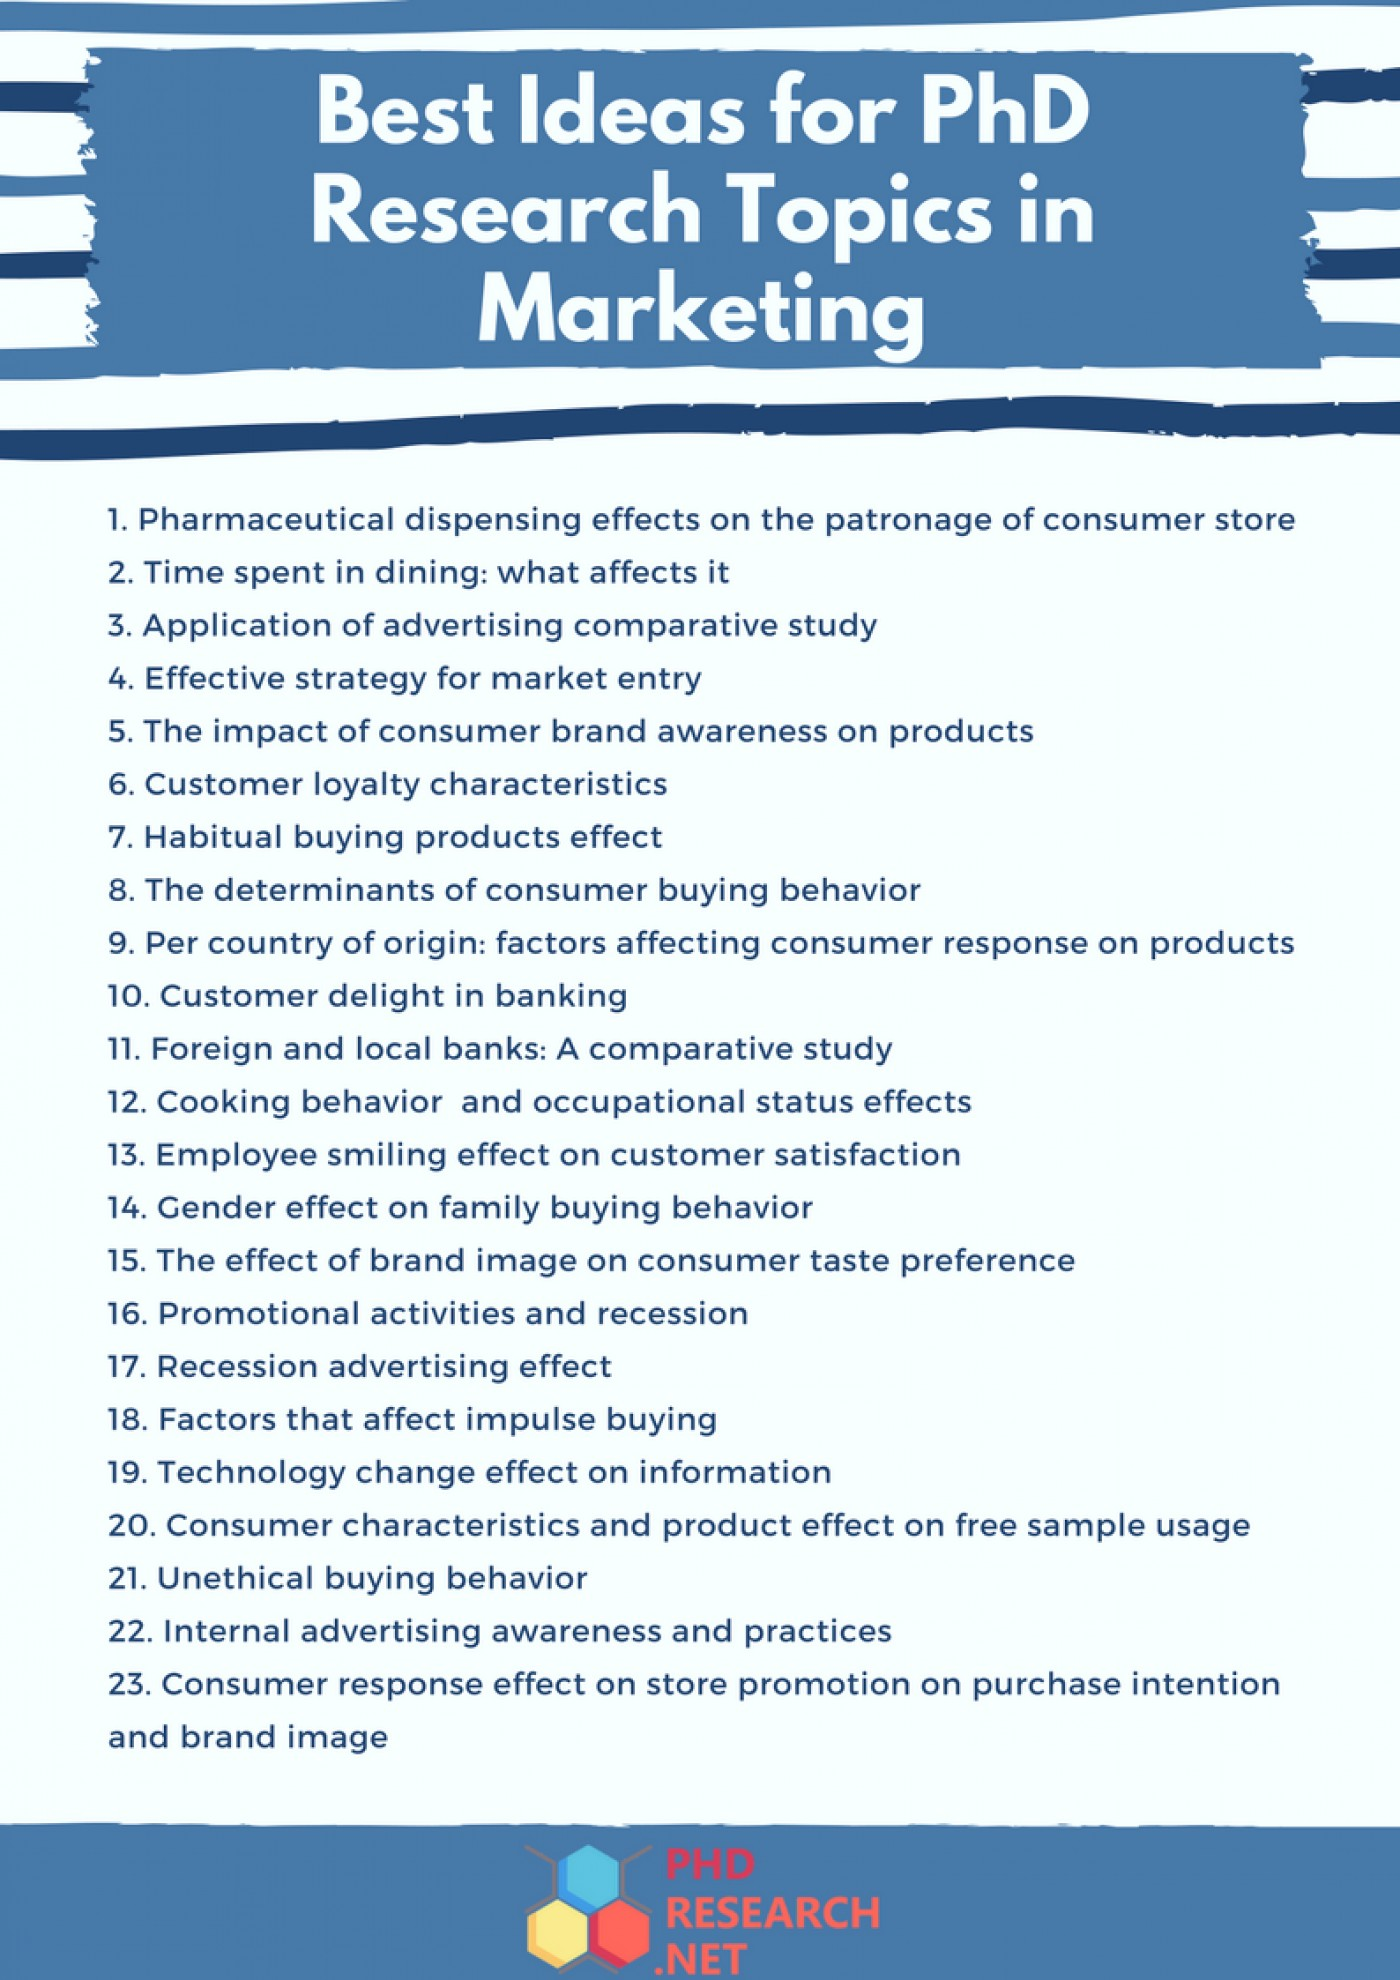 003 Best Research Paper Topics For Marketing Ideas Phd Unique 1400